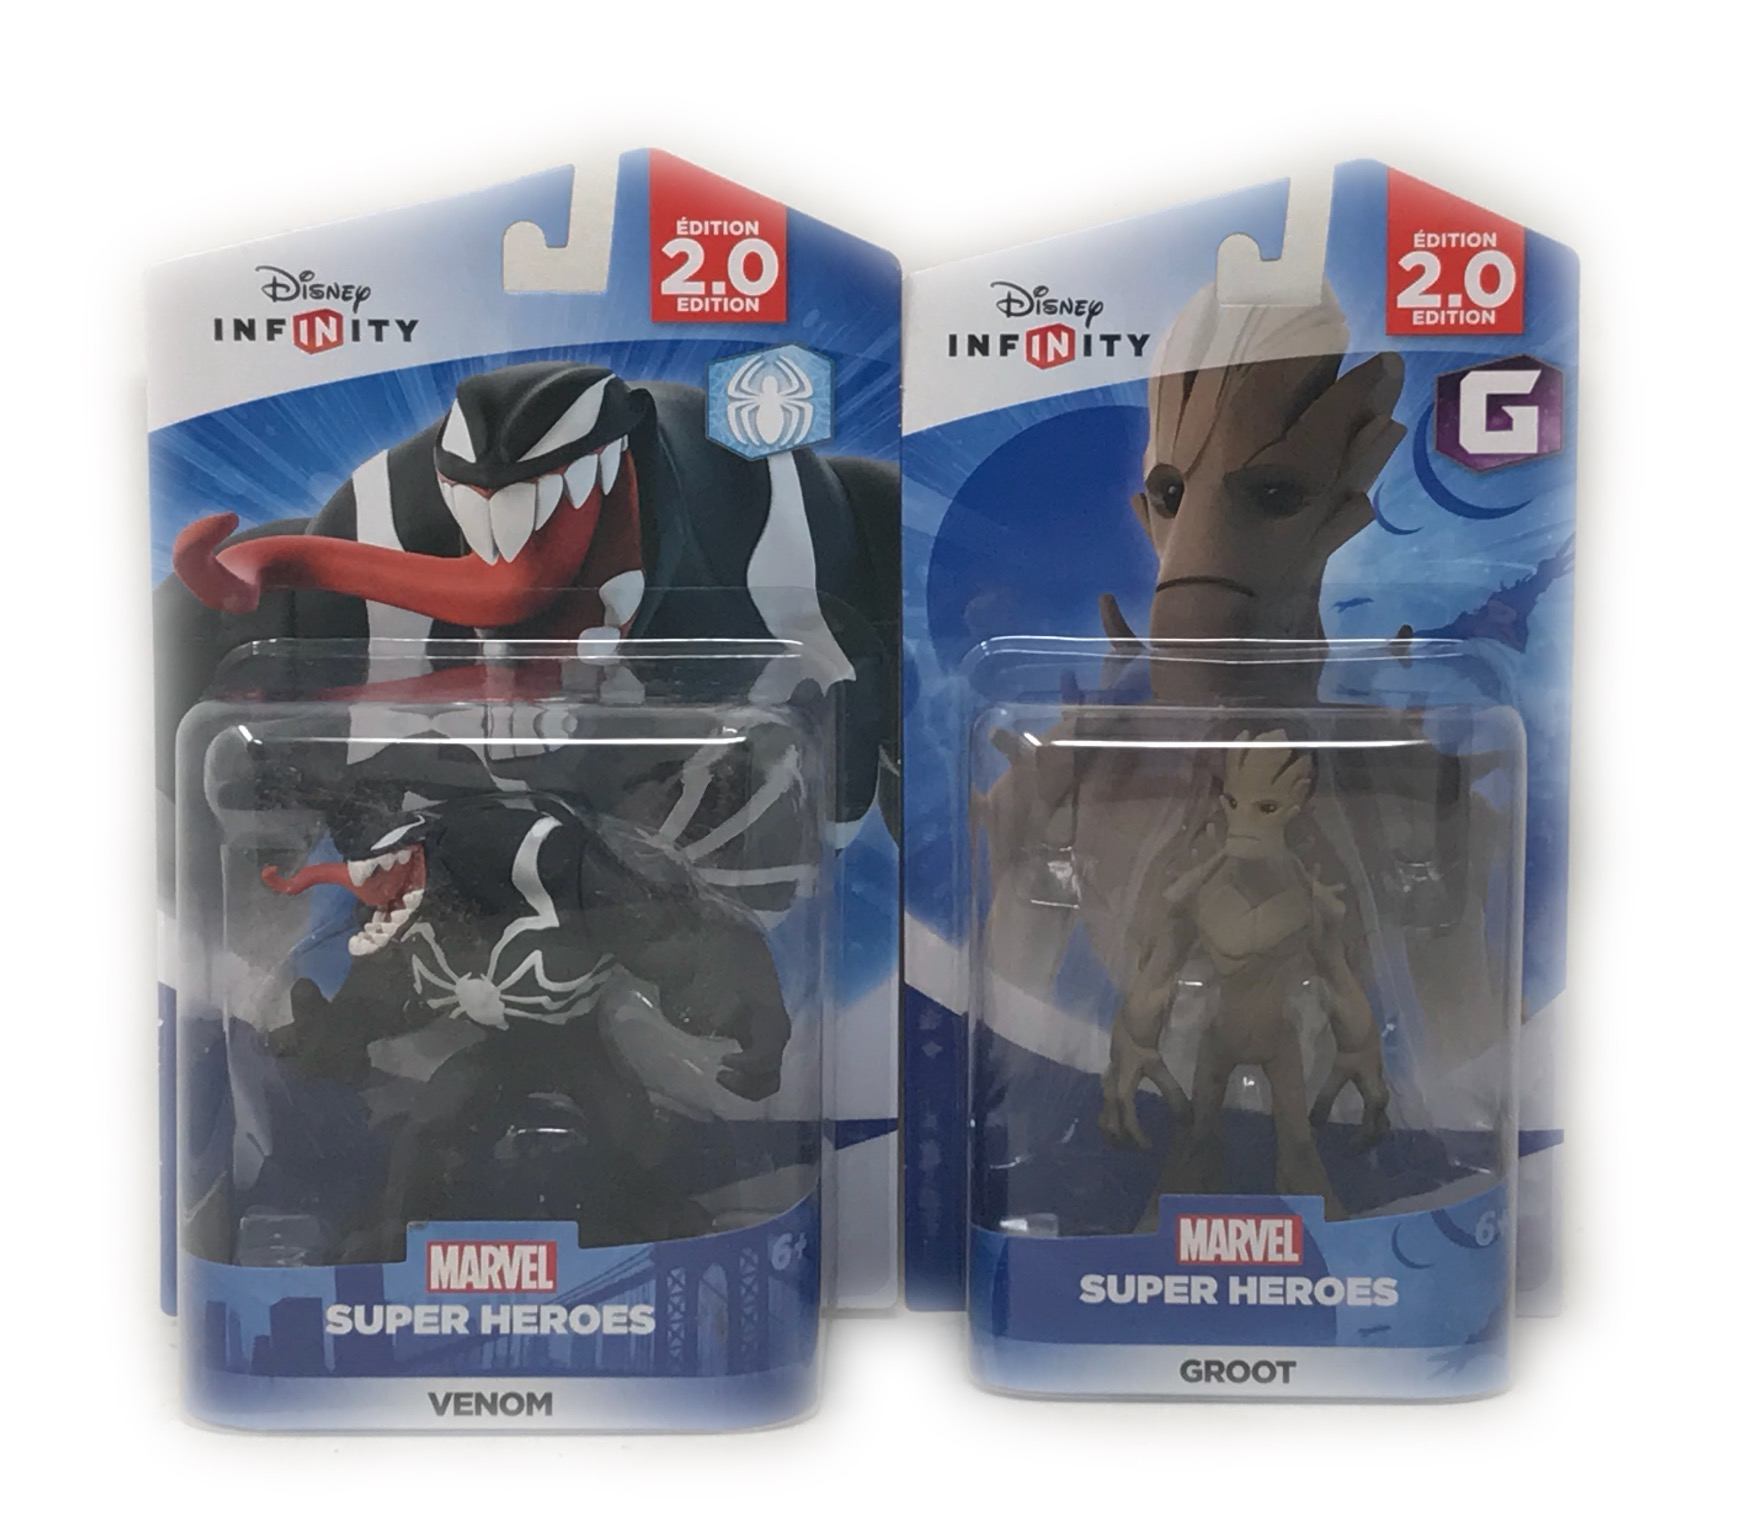 Disney Infinity Groot & Venom Figurines 2.0 Edition Guardians Of The Galaxy The Amazing Spider-Man Series (Not... by